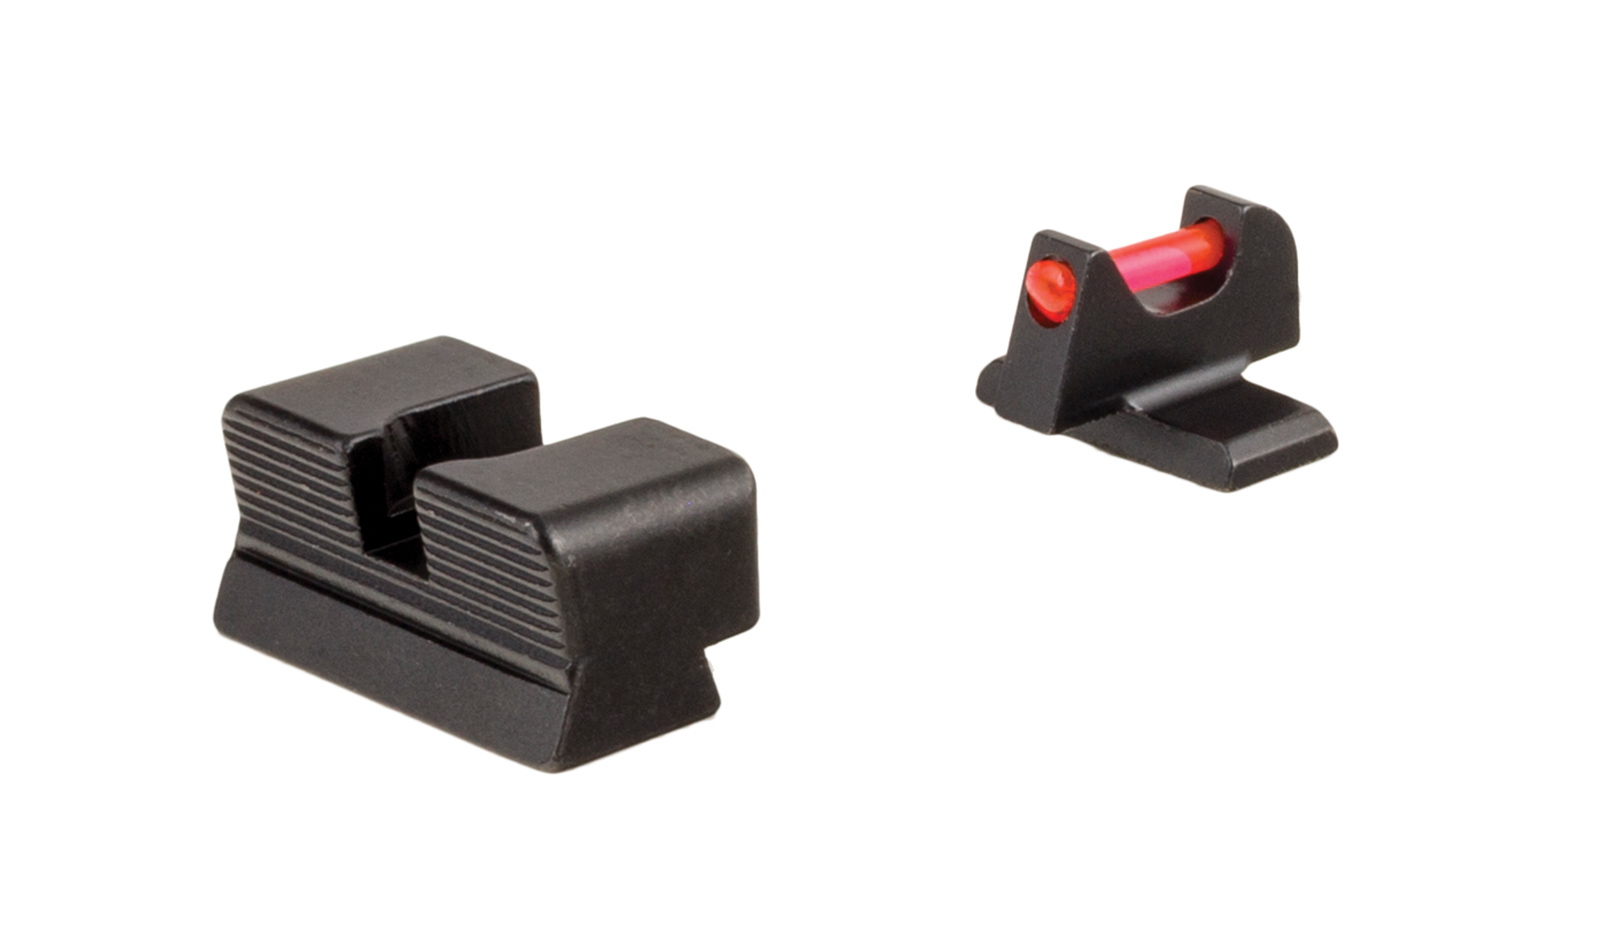 Trijicon<sup>®</sup> Fiber Sights - for Sig Sauer<sup>®</sup> #8 Front / #8 Rear